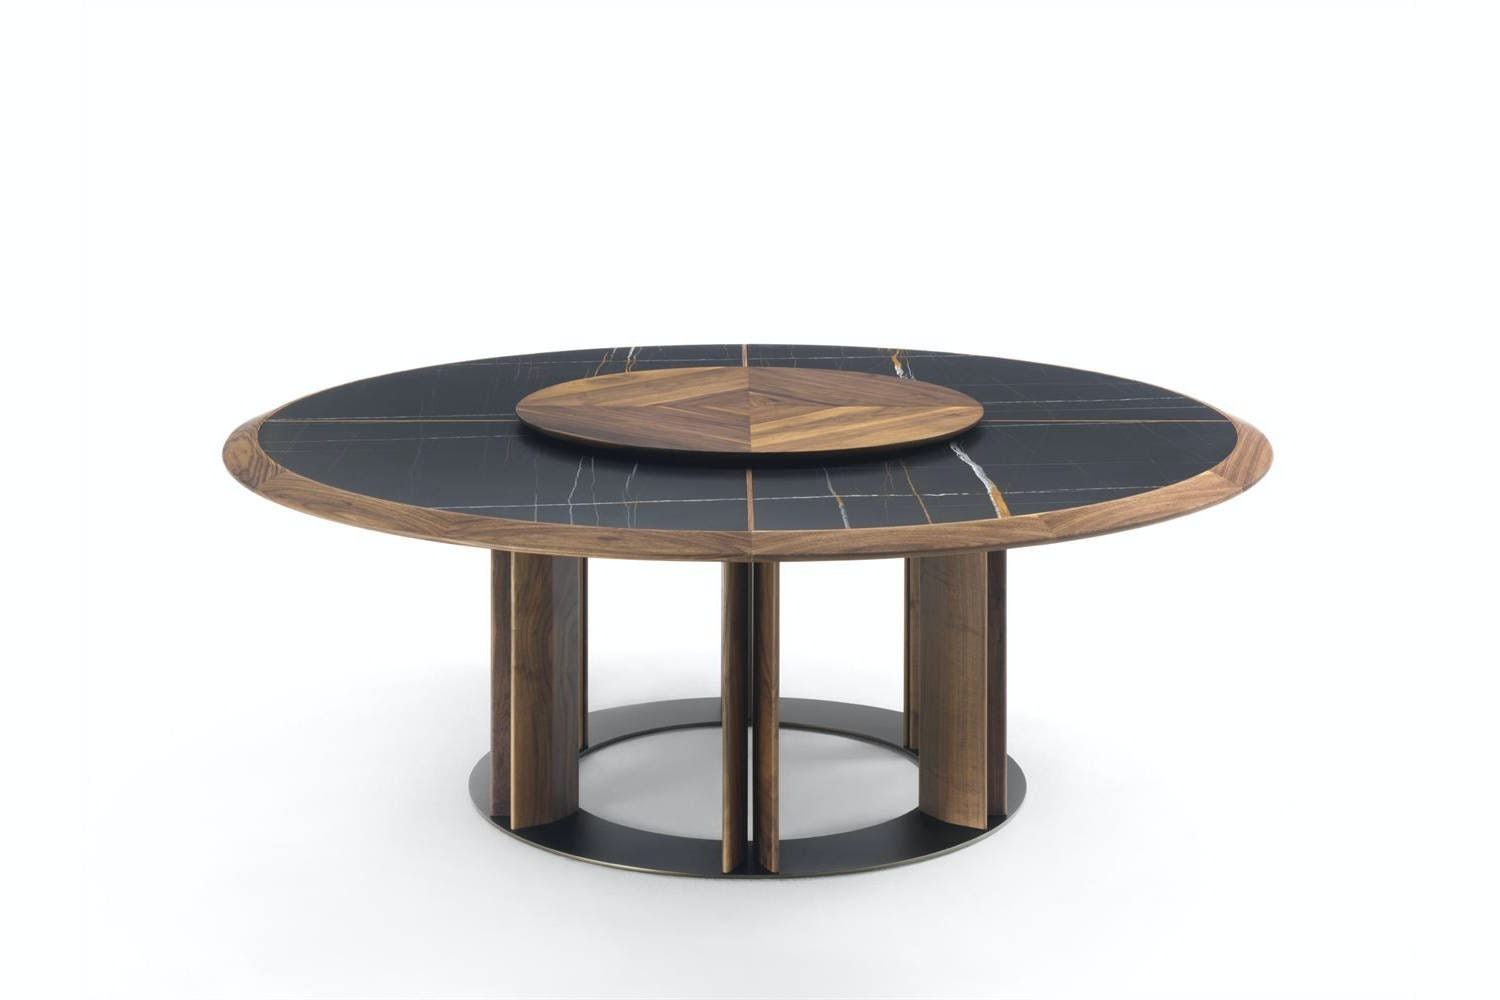 Thayl Table by Gabriele and Oscar Buratti for Porada